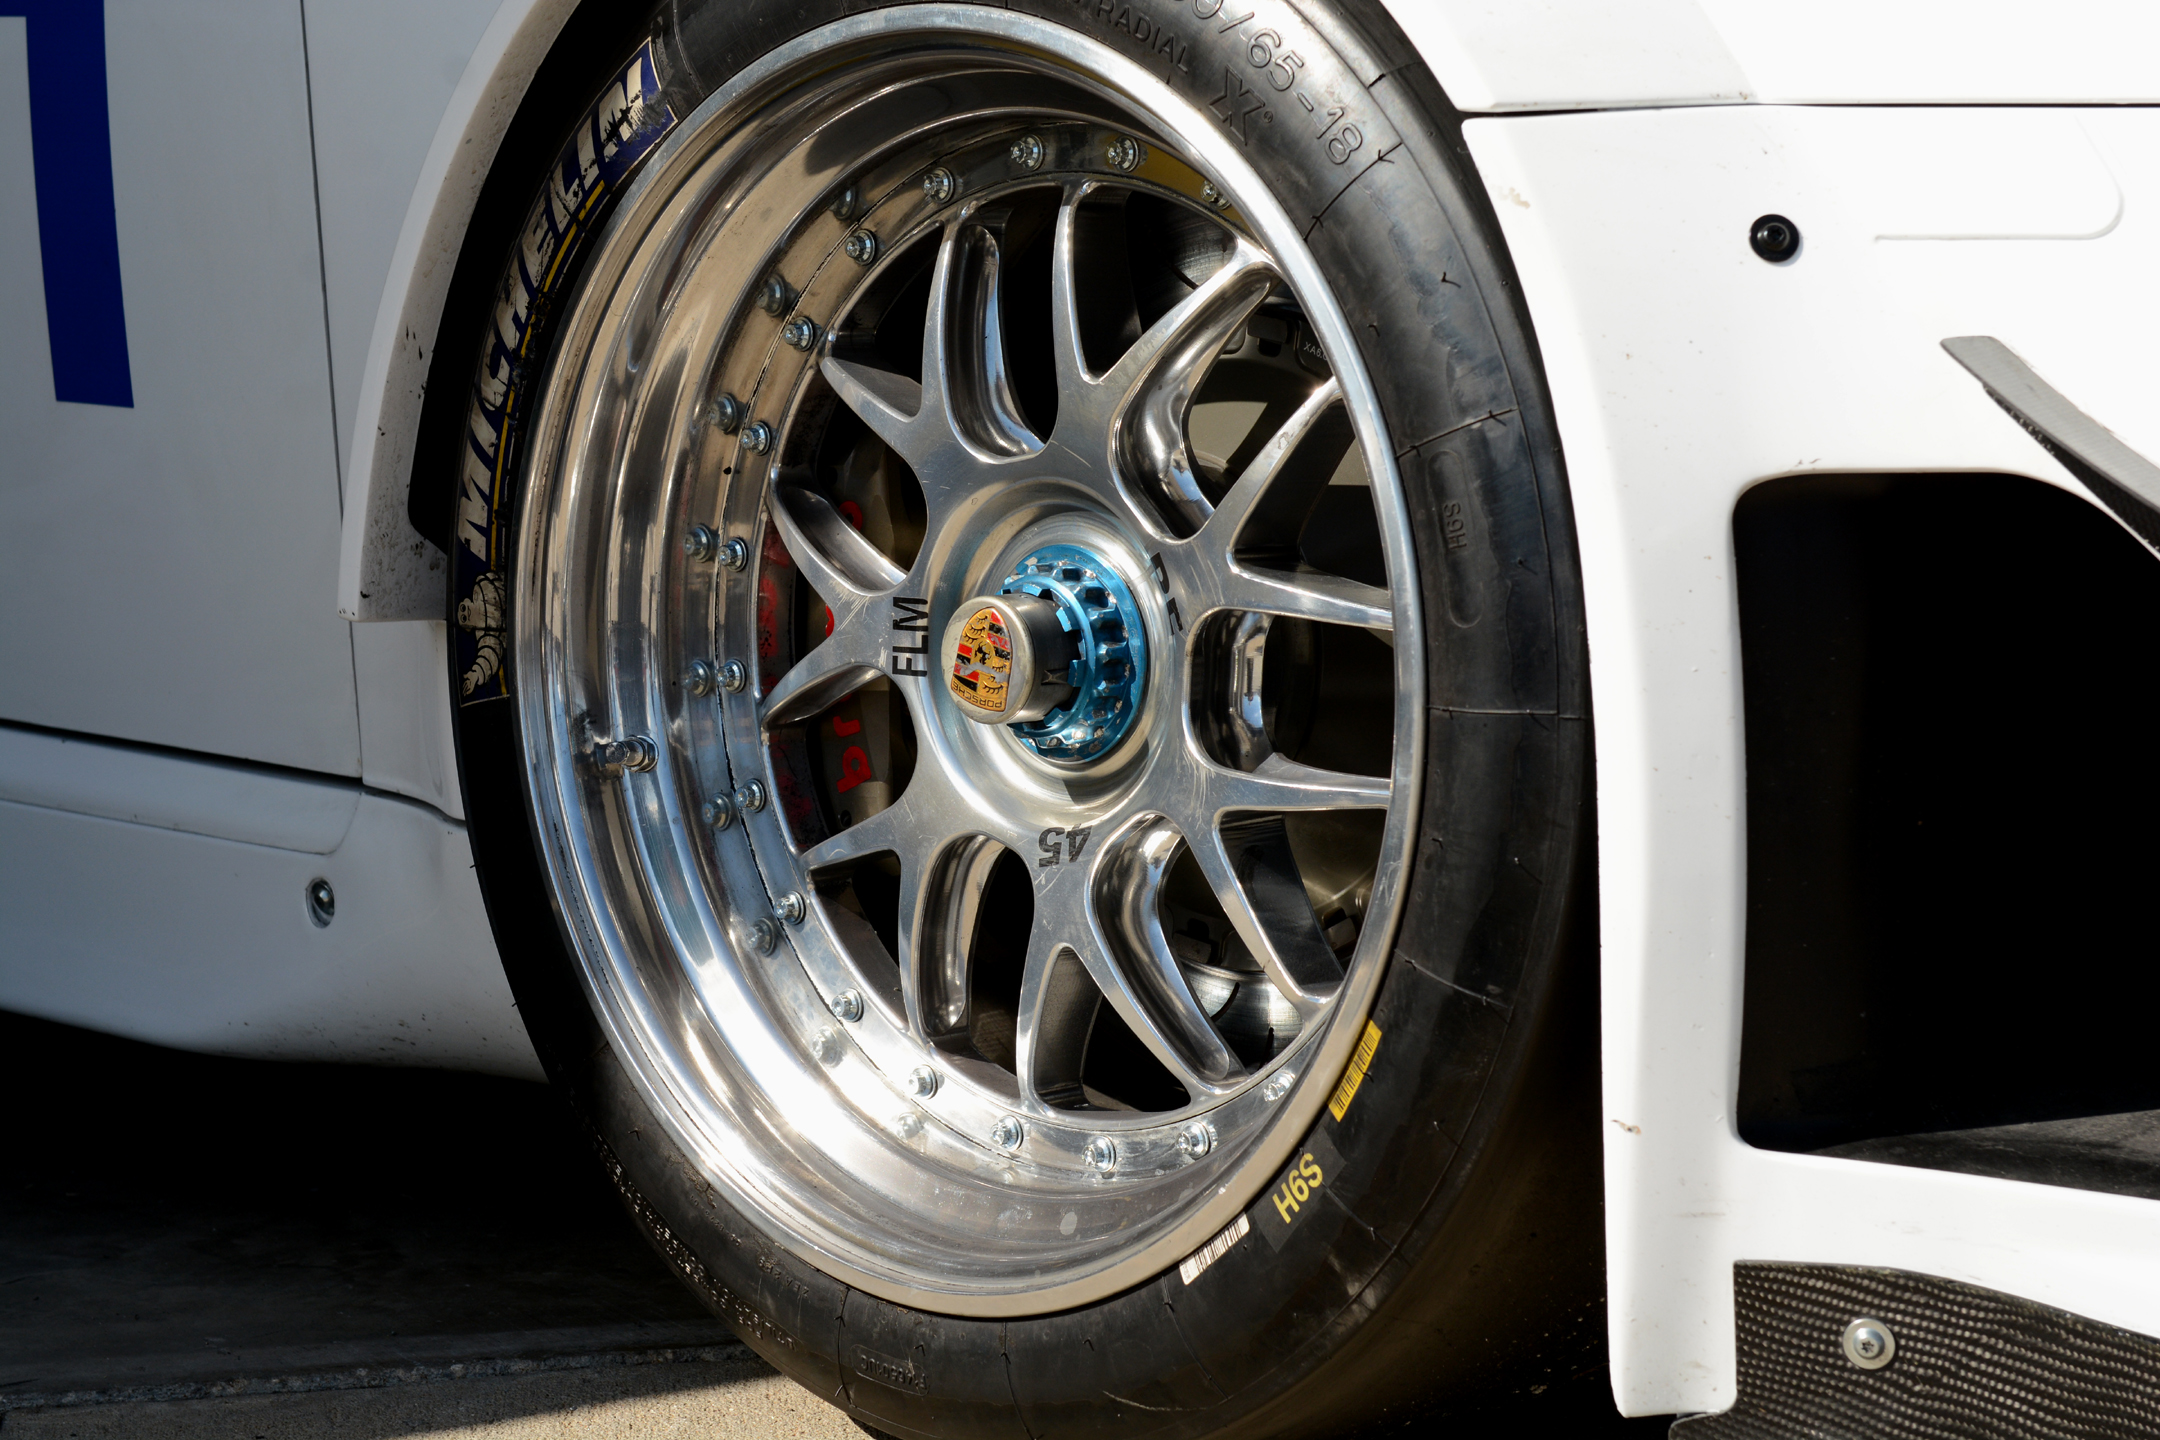 bbs porsche wheel close up